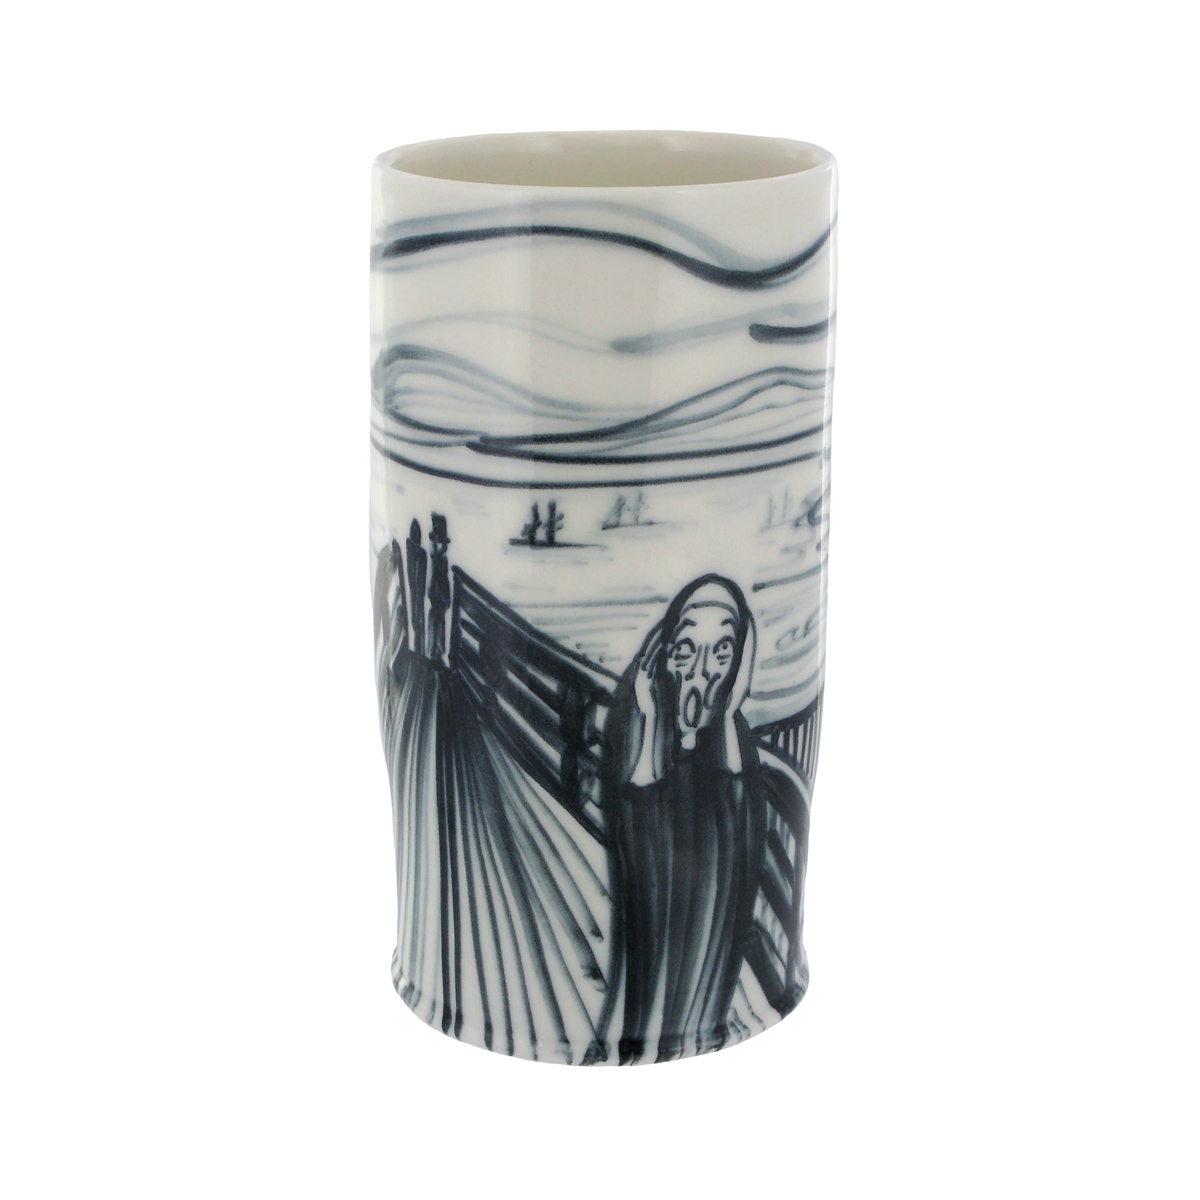 The Scream porcelain vase